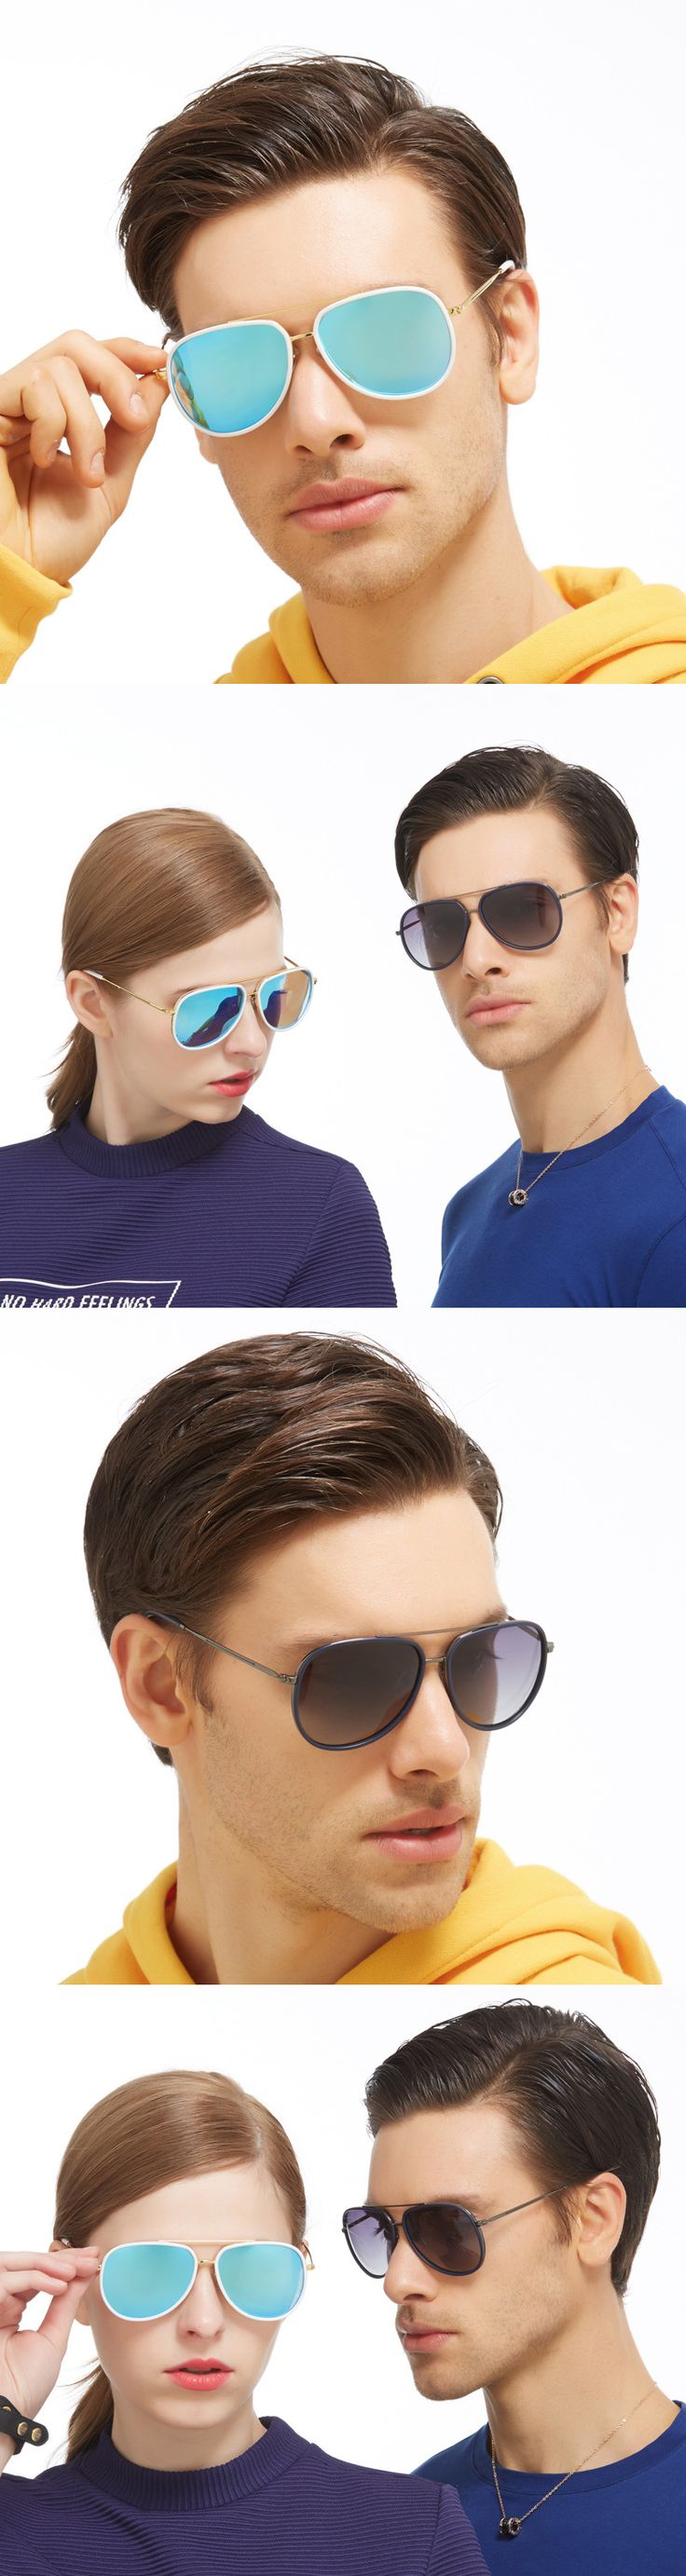 BROOWT Brand Polaroid Sunglasses Men's Women's UV400 Protection Polarized Driving Alloy Sun Glasses For Men Women BR331 http://g03.a.alicdn.com/kf/HTB1V9.LPXXXXXaqaXXXq6xXFXXXm/225420360/HTB1V9.LPXXXXXaqaXXXq6xXFXXXm.jpg?size=1172987&height=3006&width=800&hash=4887380b1a1435b200a7cfc472c6e2da   lmodel]-[custom]-[5959ou will be responsible for Custom duty in some circumstances.Most PopularProduct Photos be